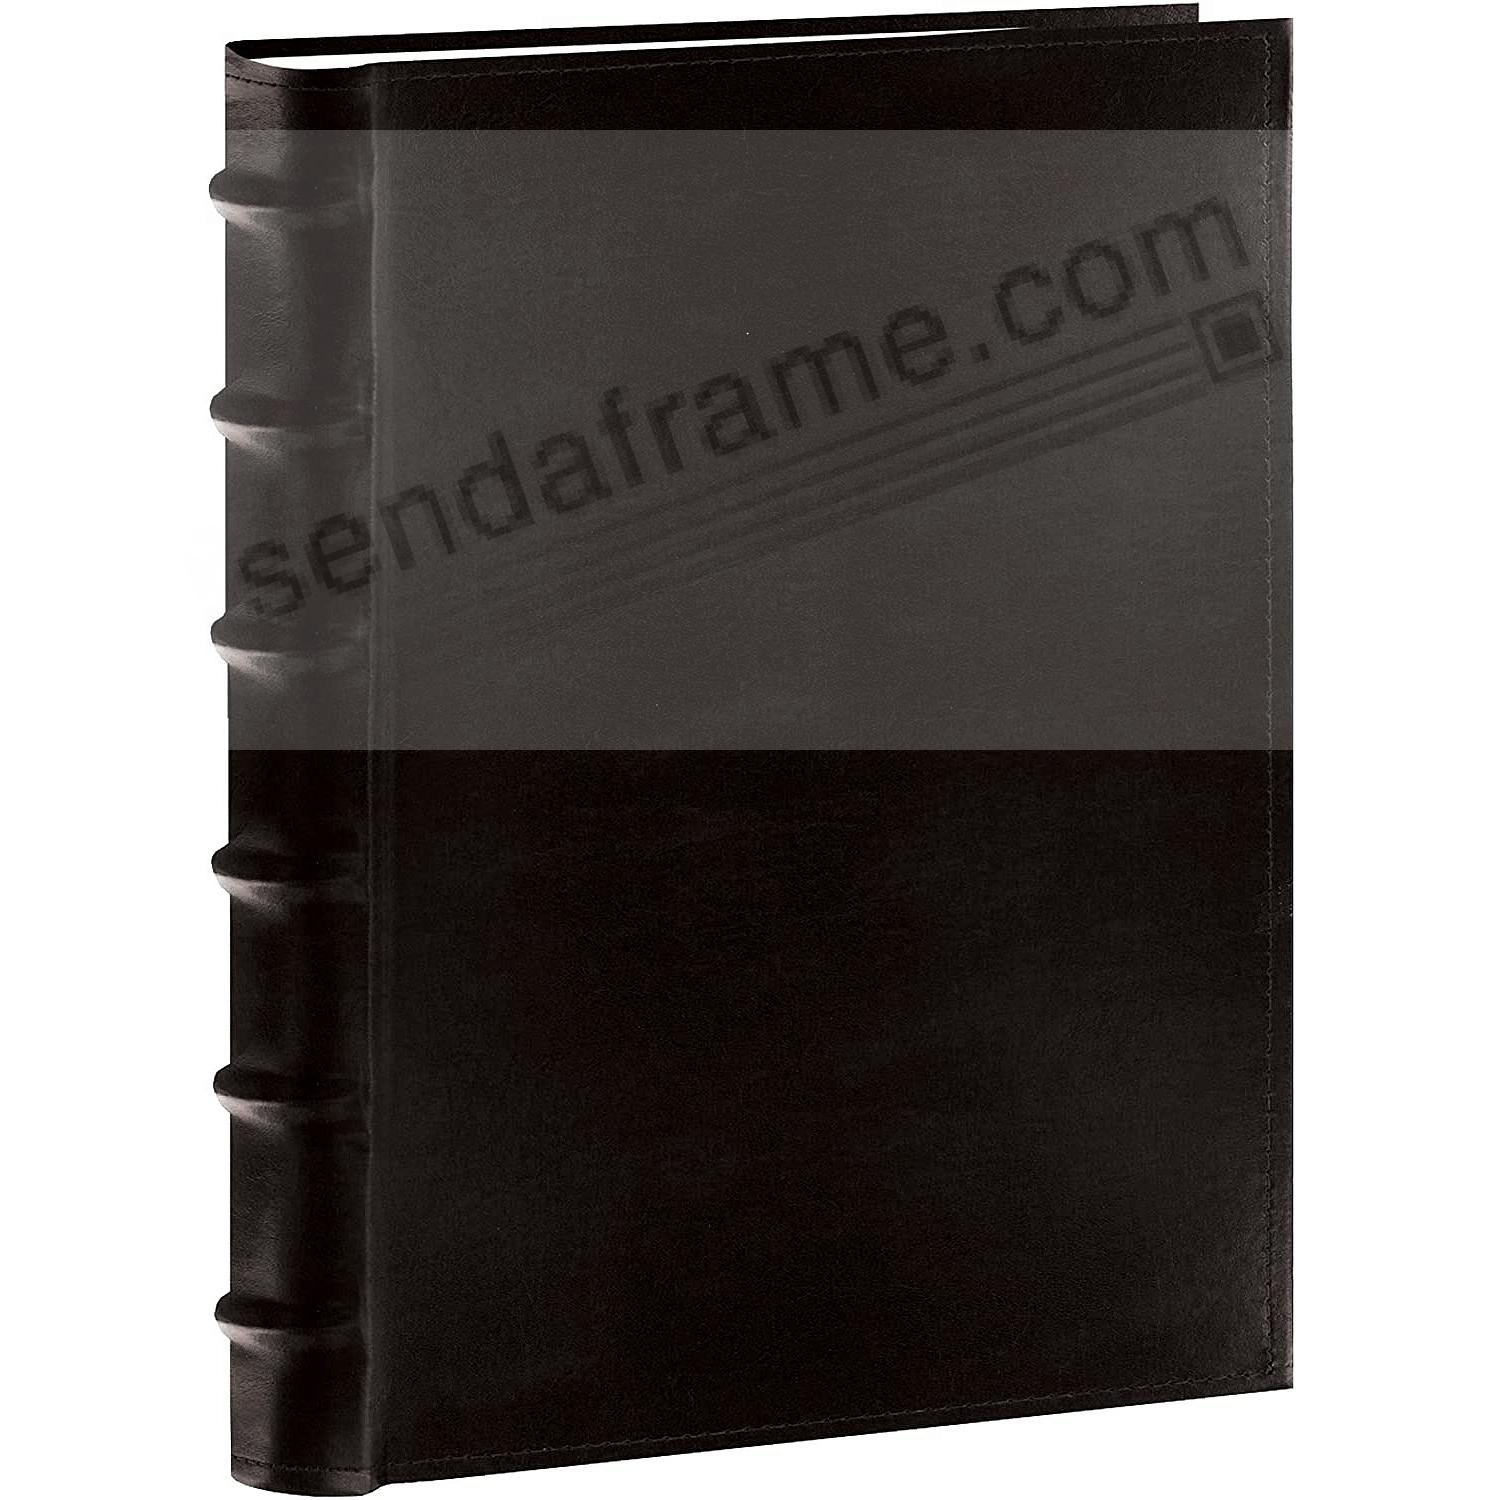 Black Leather BI-DIRECTIONAL 300 capacity slide-in pocket album w/Memo